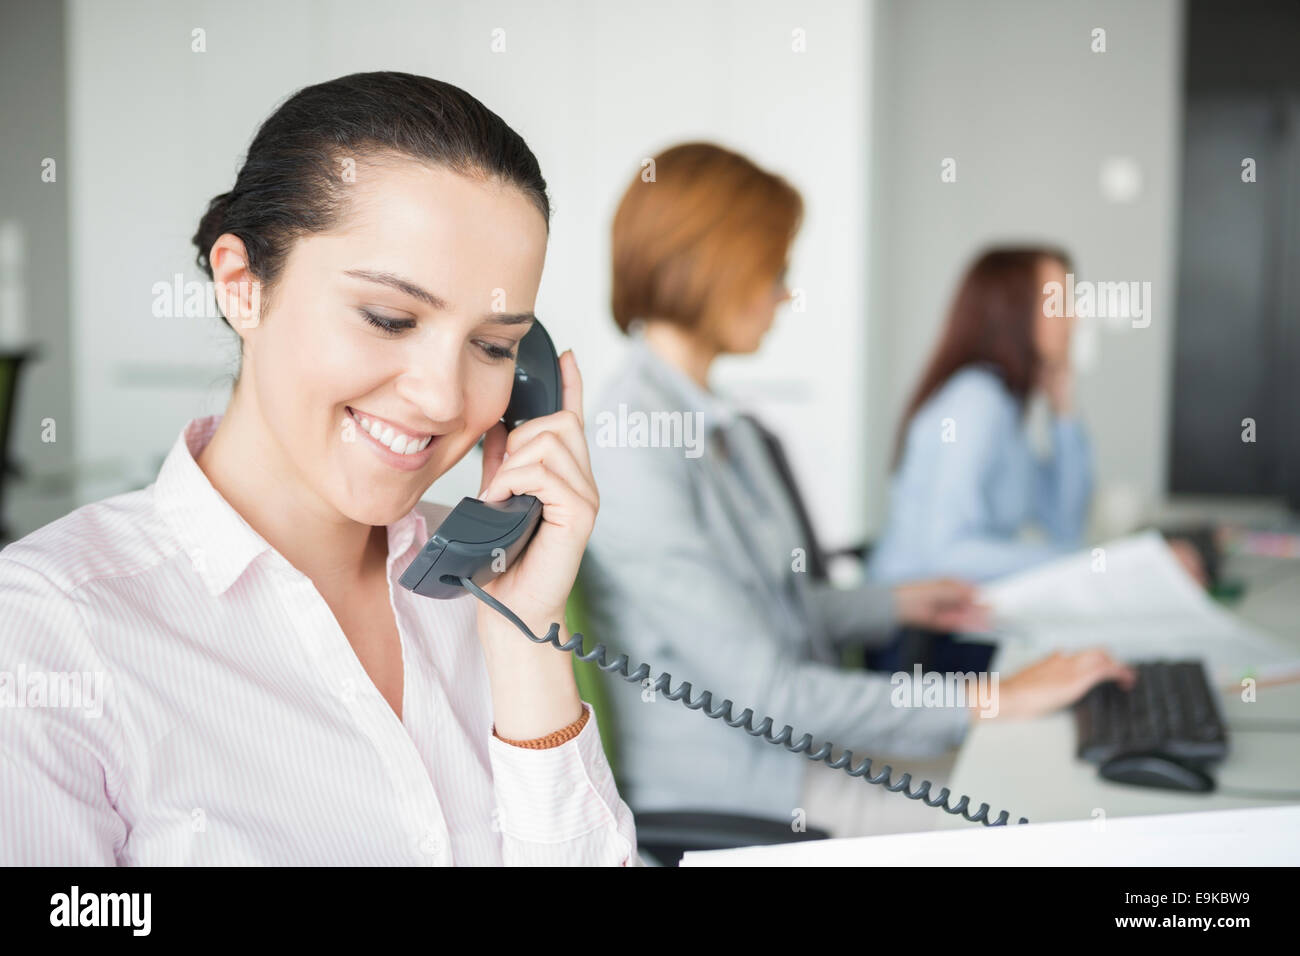 Smiling young businesswoman using landline telephone with colleagues in background at office - Stock Image